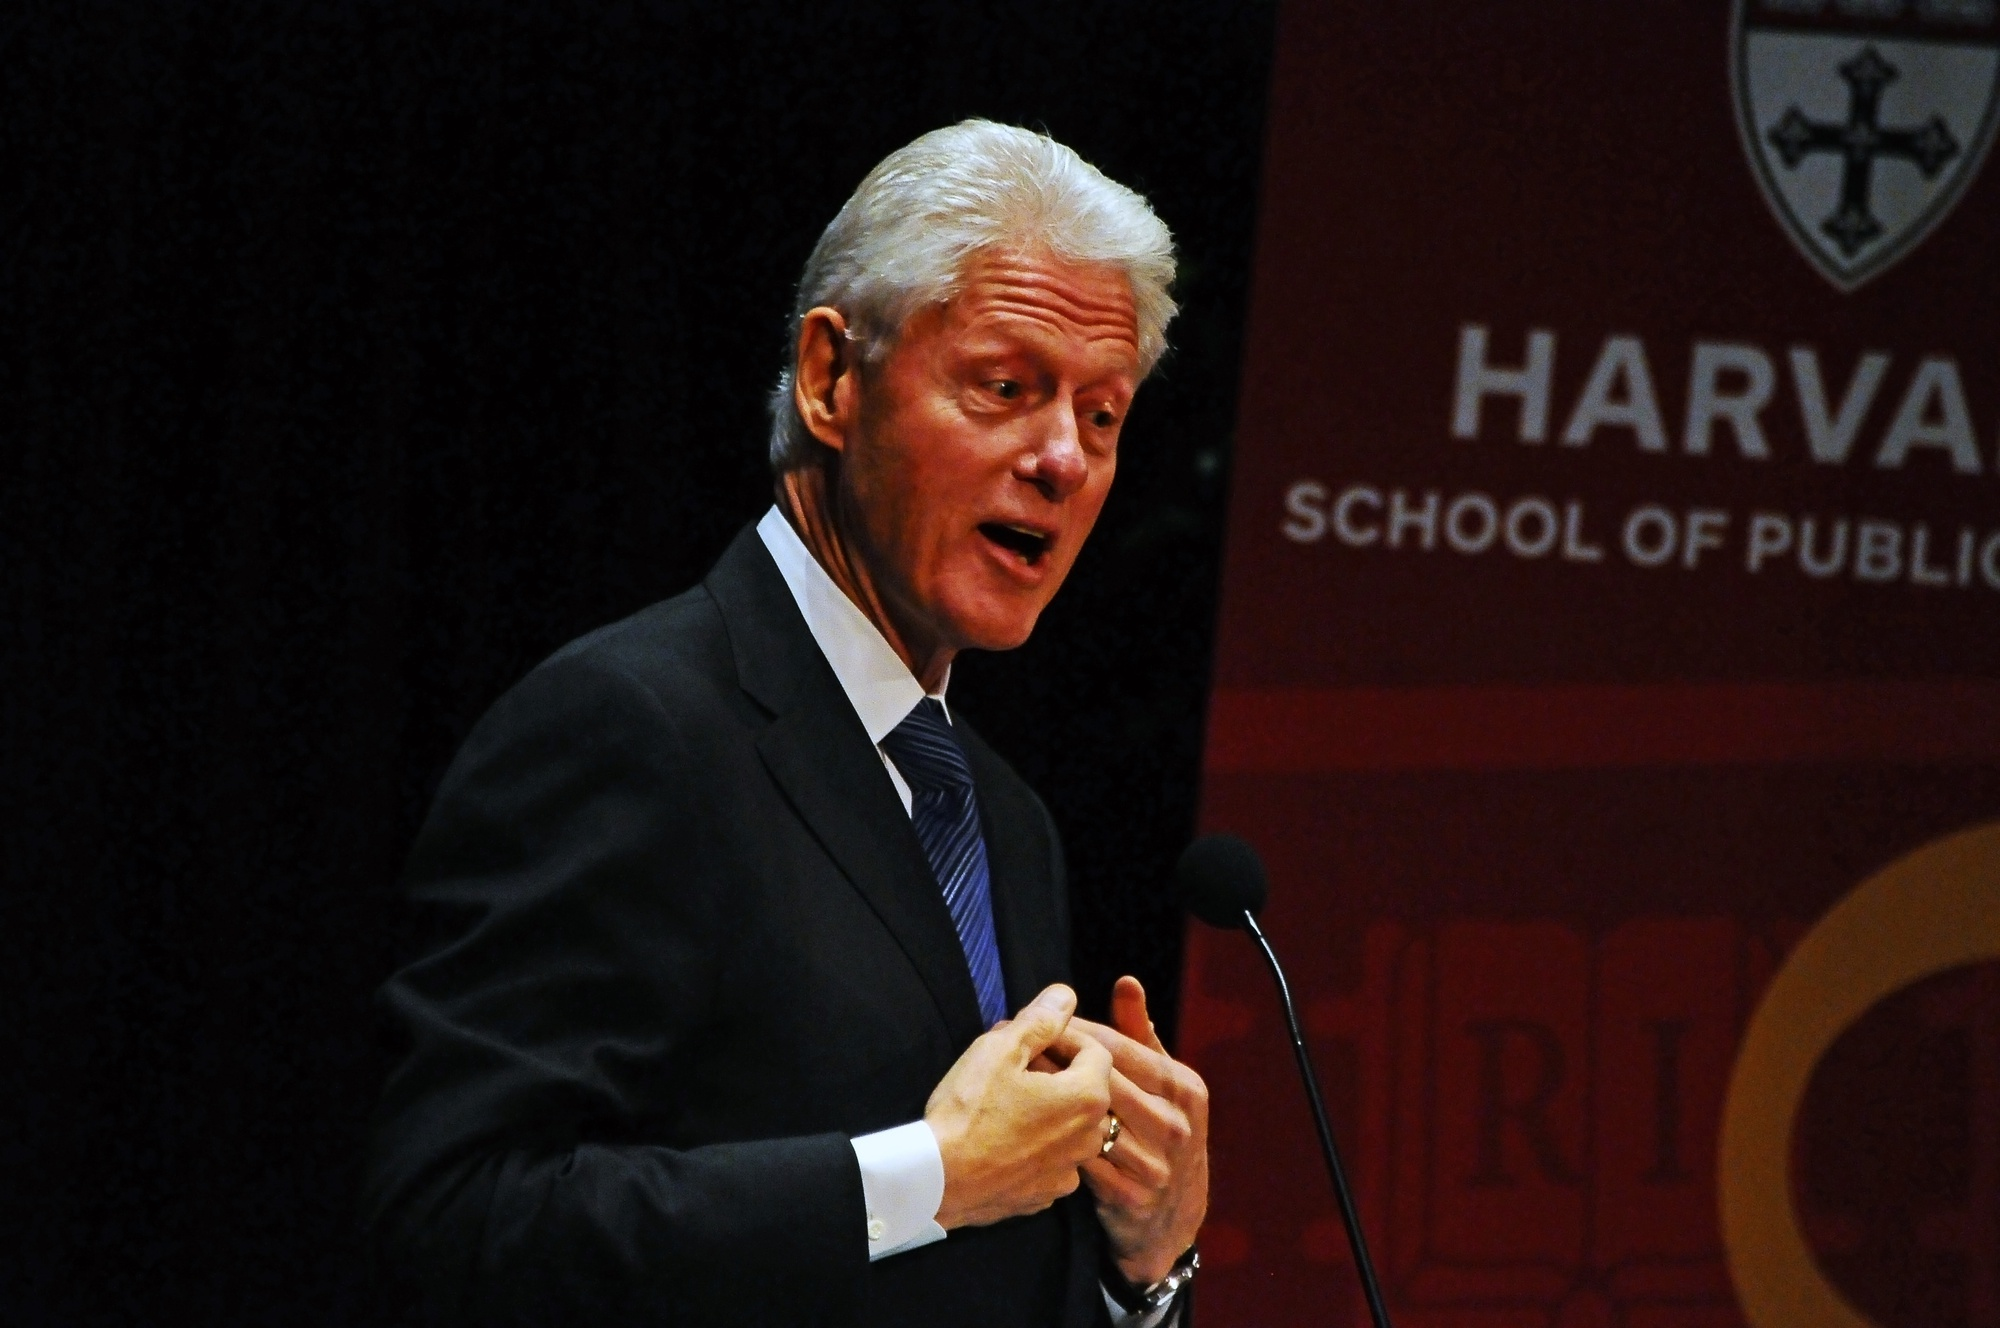 President Bill Clinton speaks about the importance of recognizing our similarities in fostering human and environmental well-being. Clinton and his daughter, Chelsea Clinton, were honored by the Harvard School of Public Health on Thursday for their efforts to further public health, including among other things the distribution of AIDS medication.